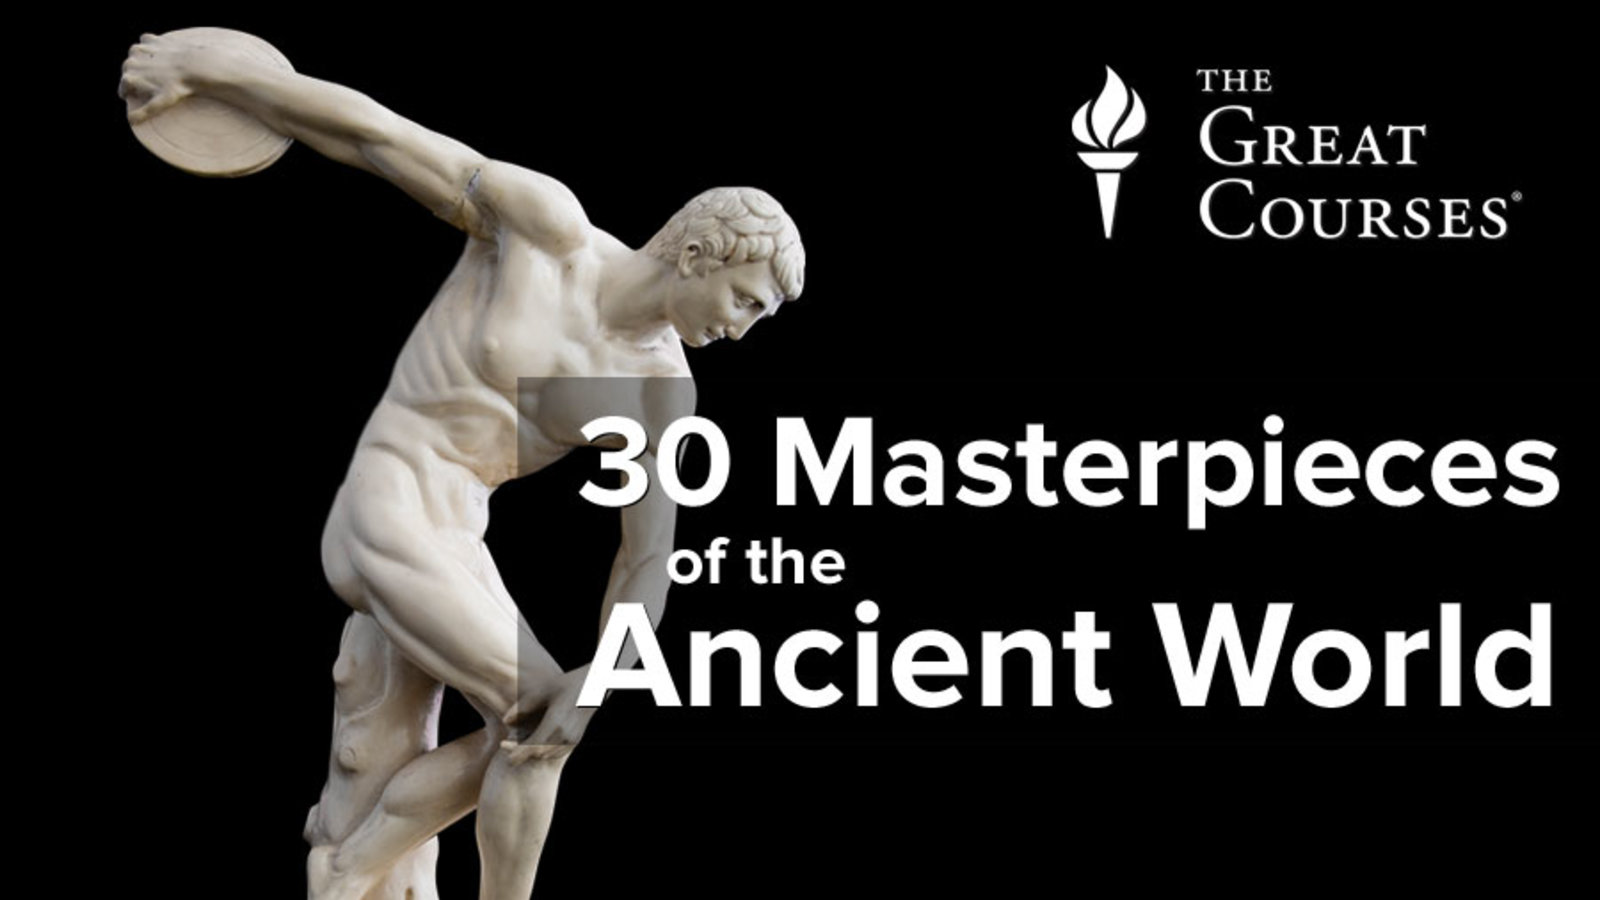 30 Masterpieces of the Ancient World